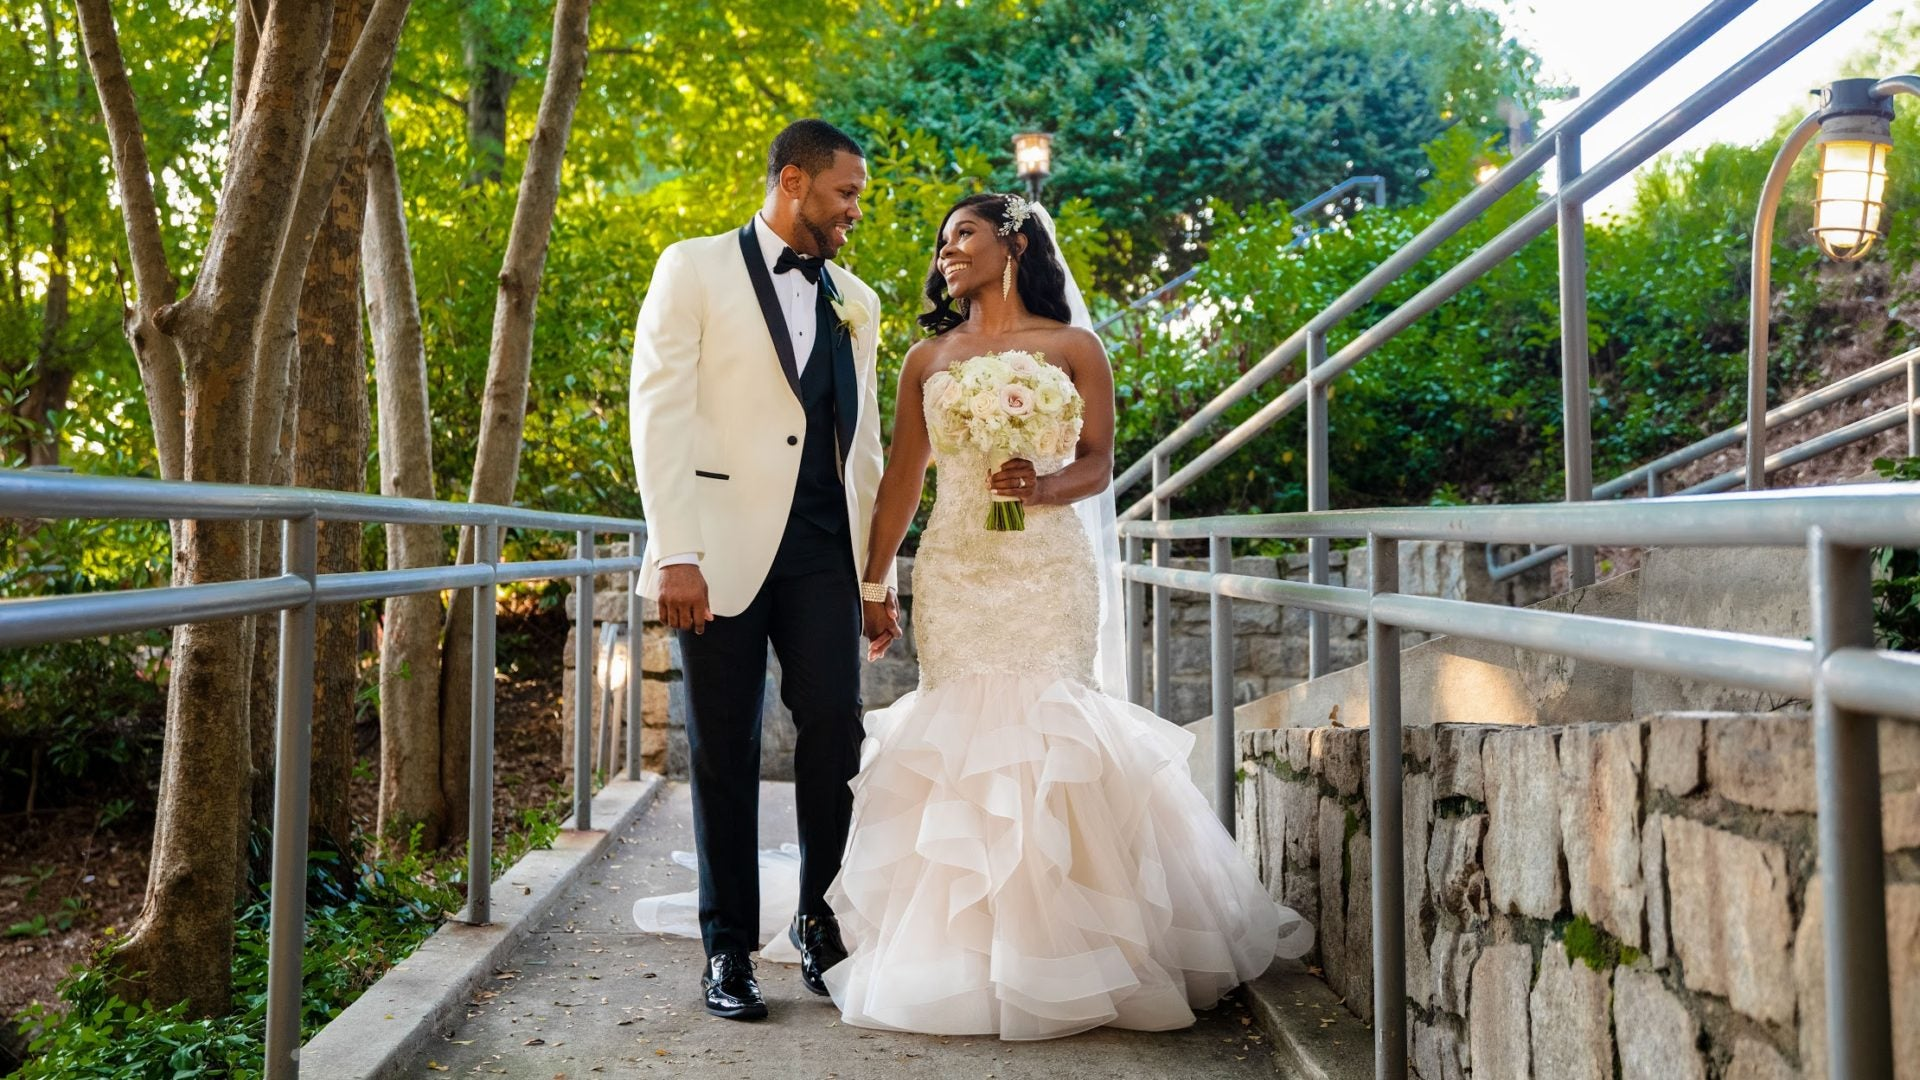 Bridal Bliss: Erica and Greg Brought A Taste Of Chicago To Their Atlanta Wedding